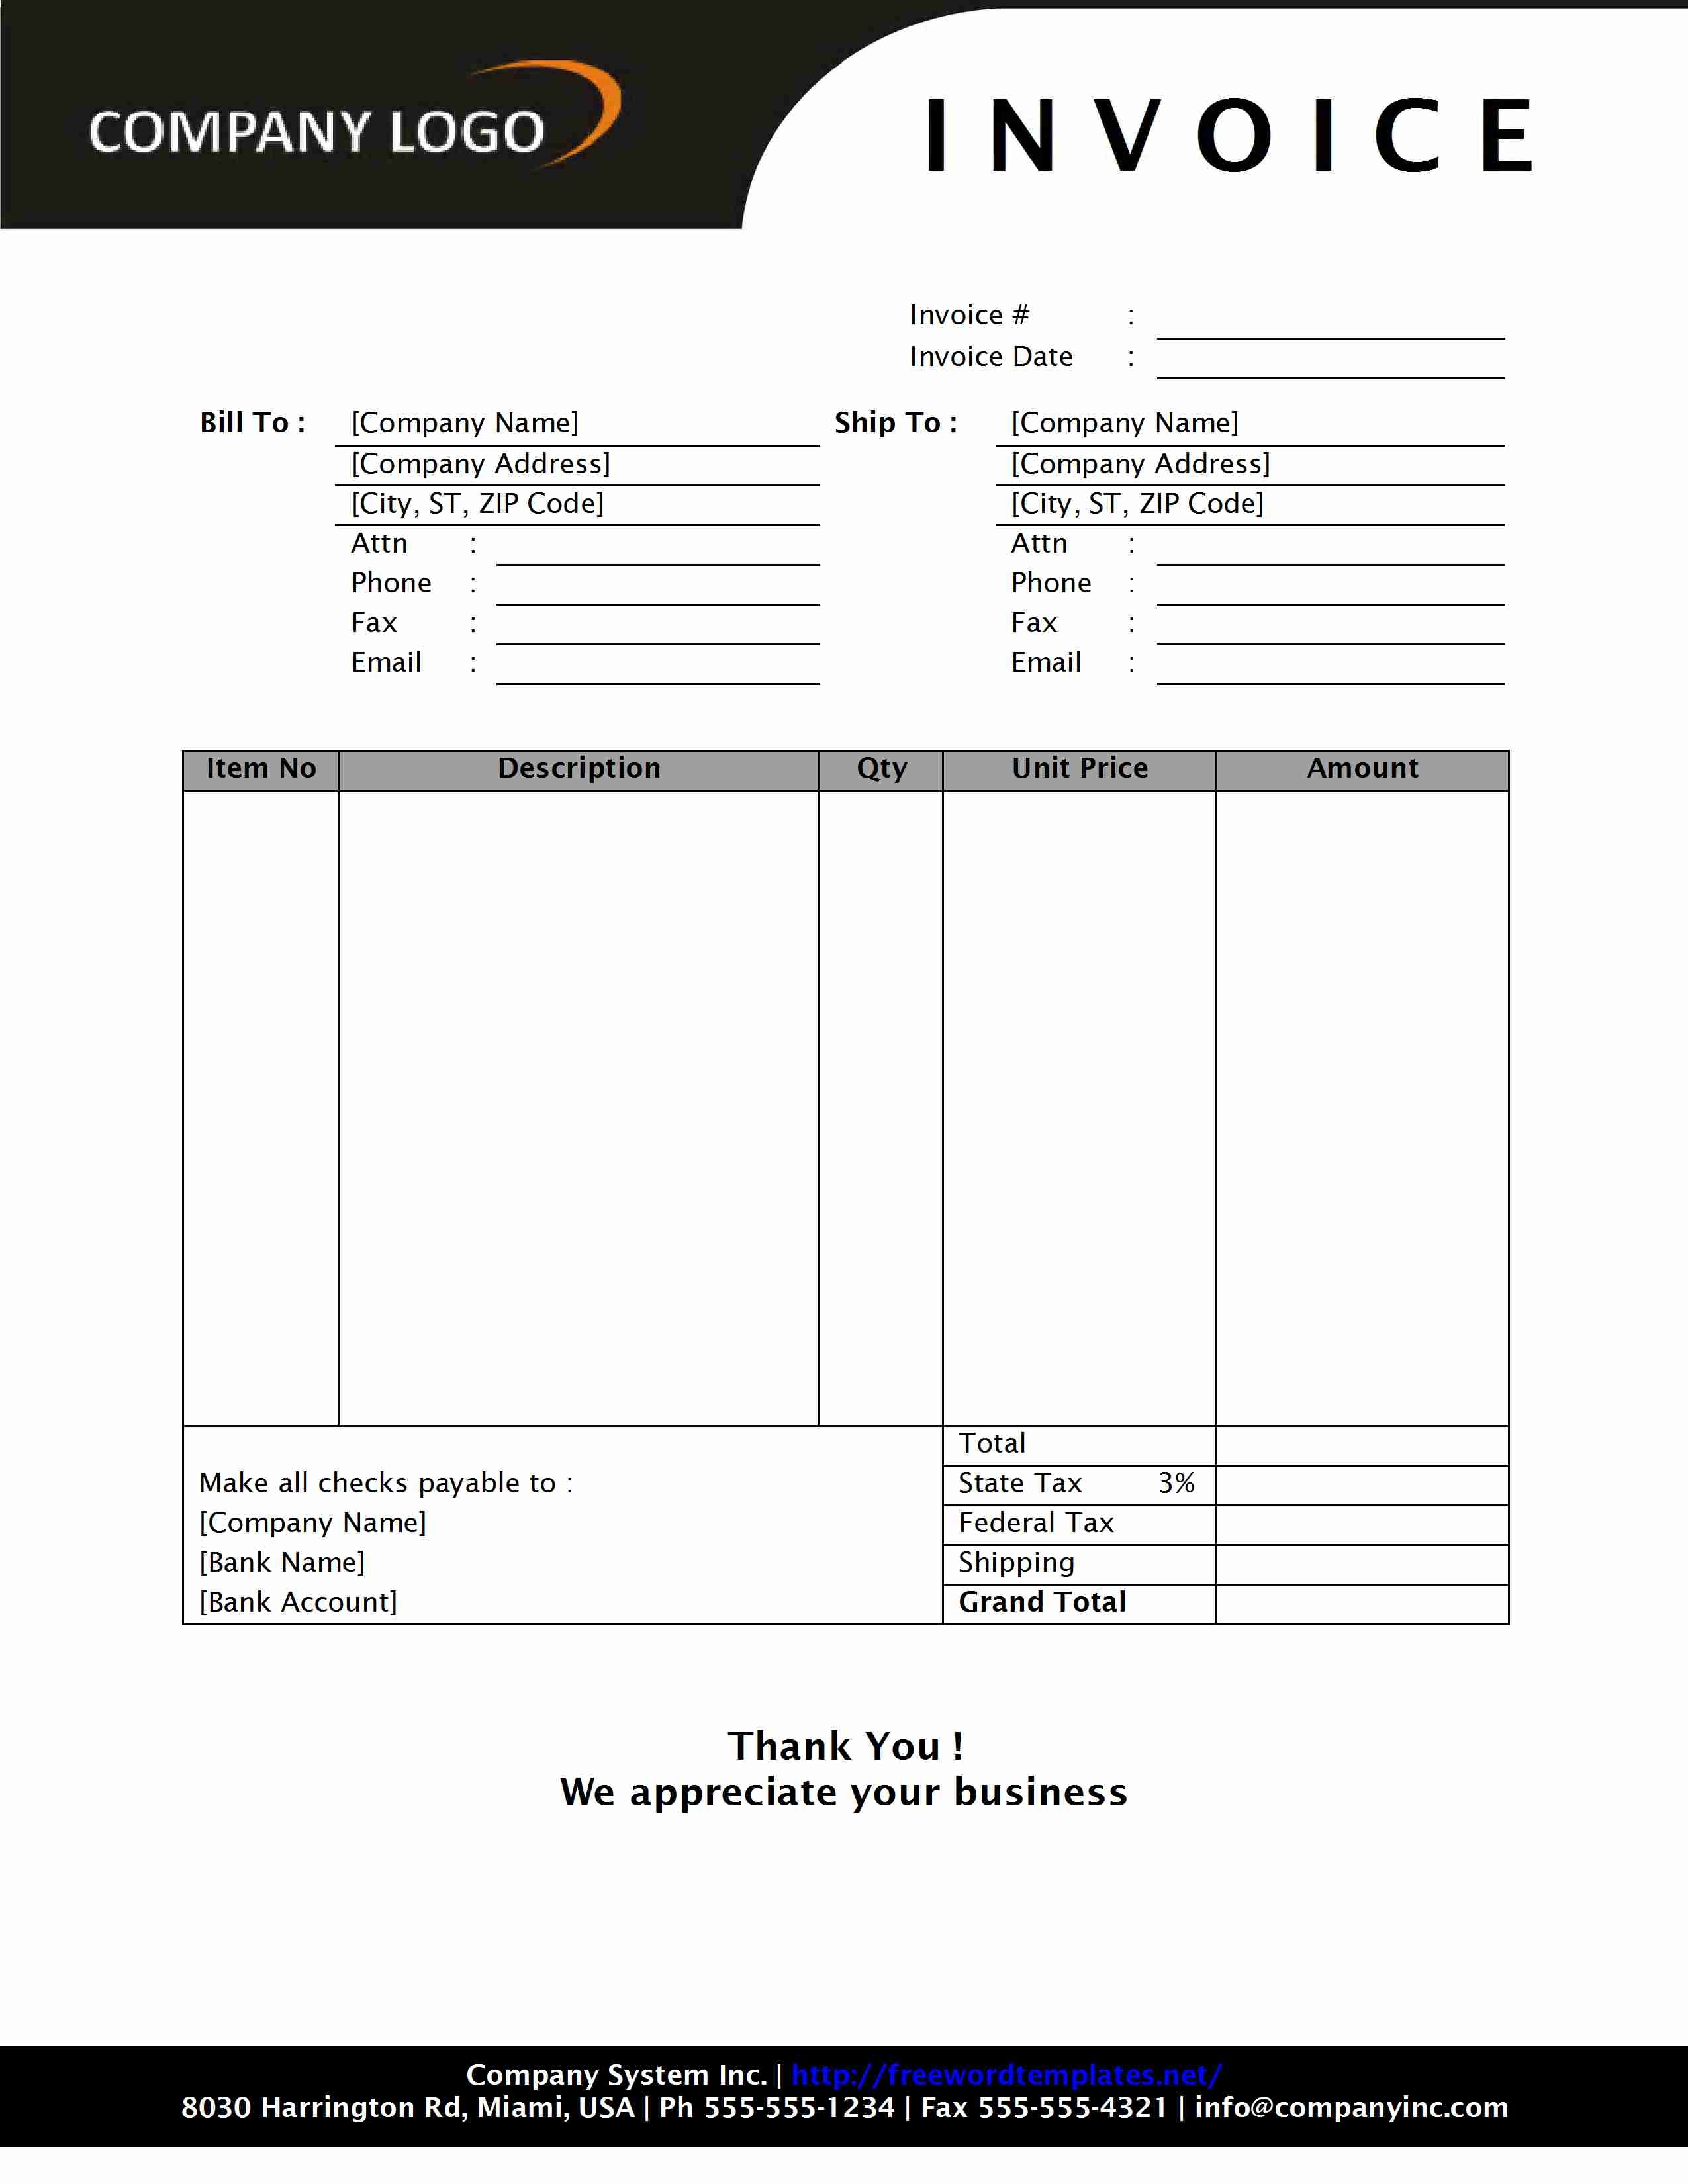 Sales Invoice Templates 27 Examples In Word And Excel Cash Invoice Template Invoice Example